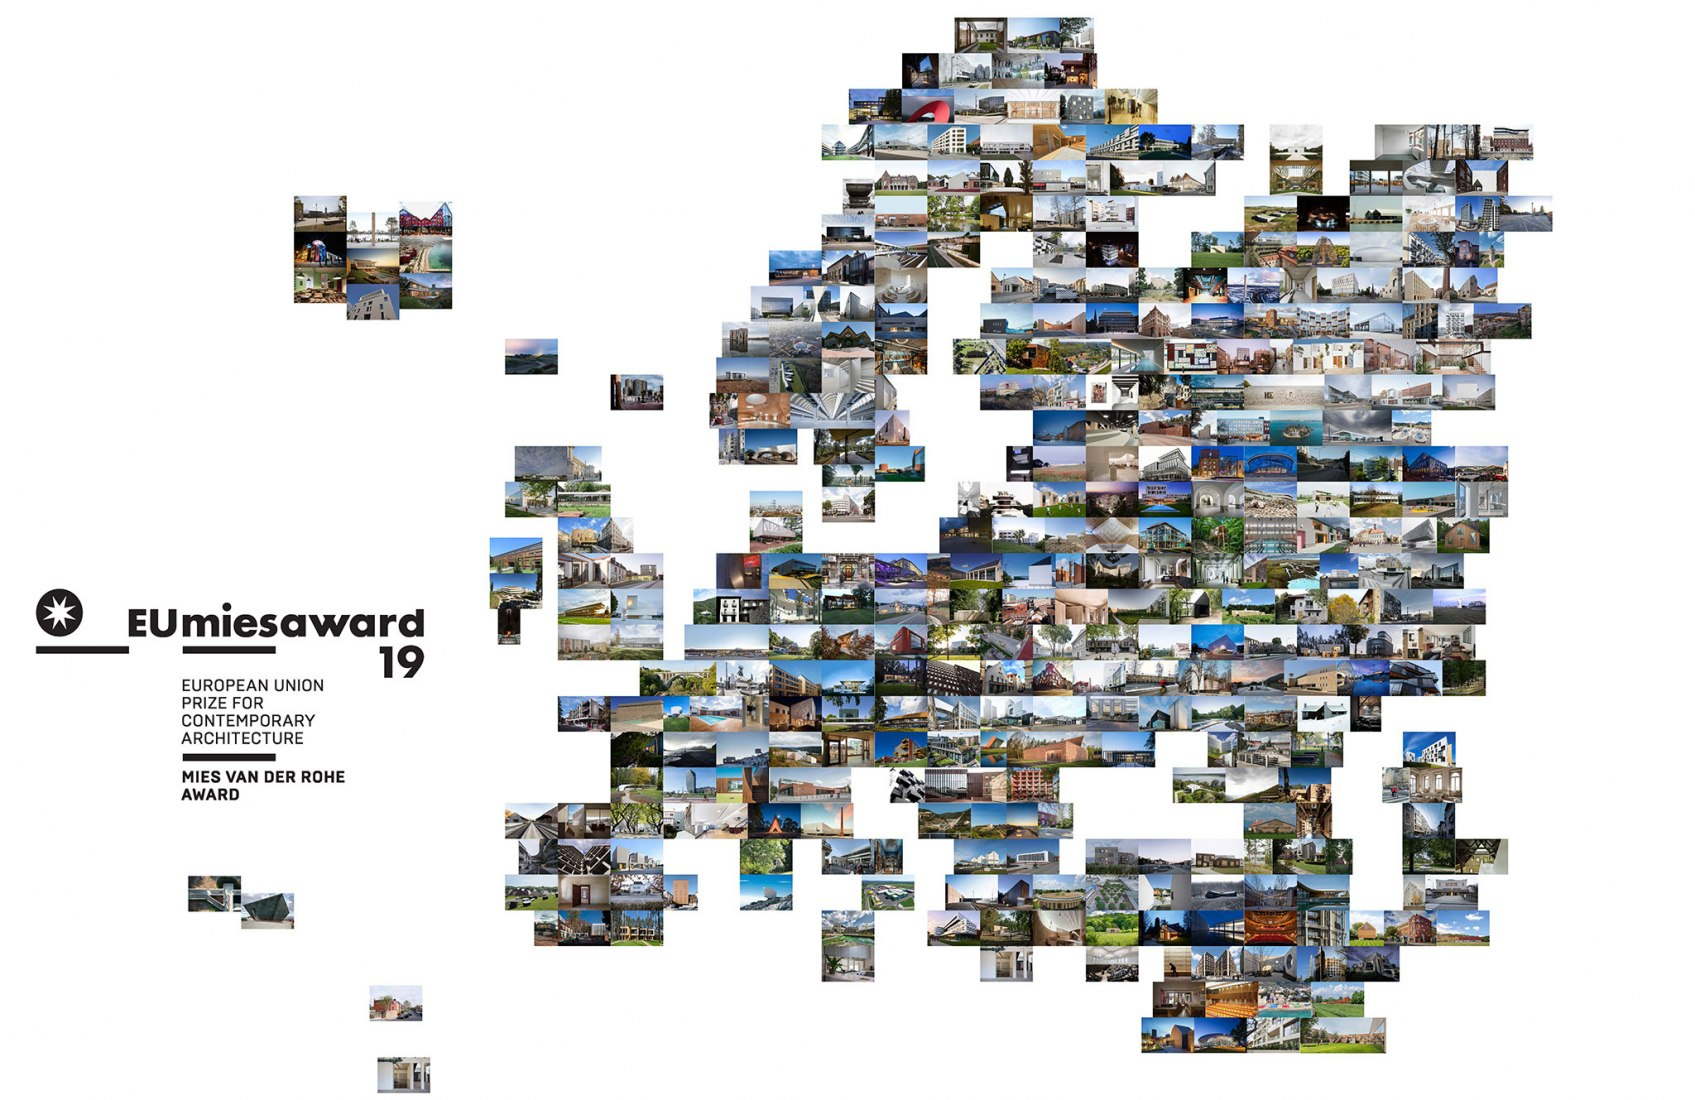 383 works competing in the EU MIES AWARD 2019!